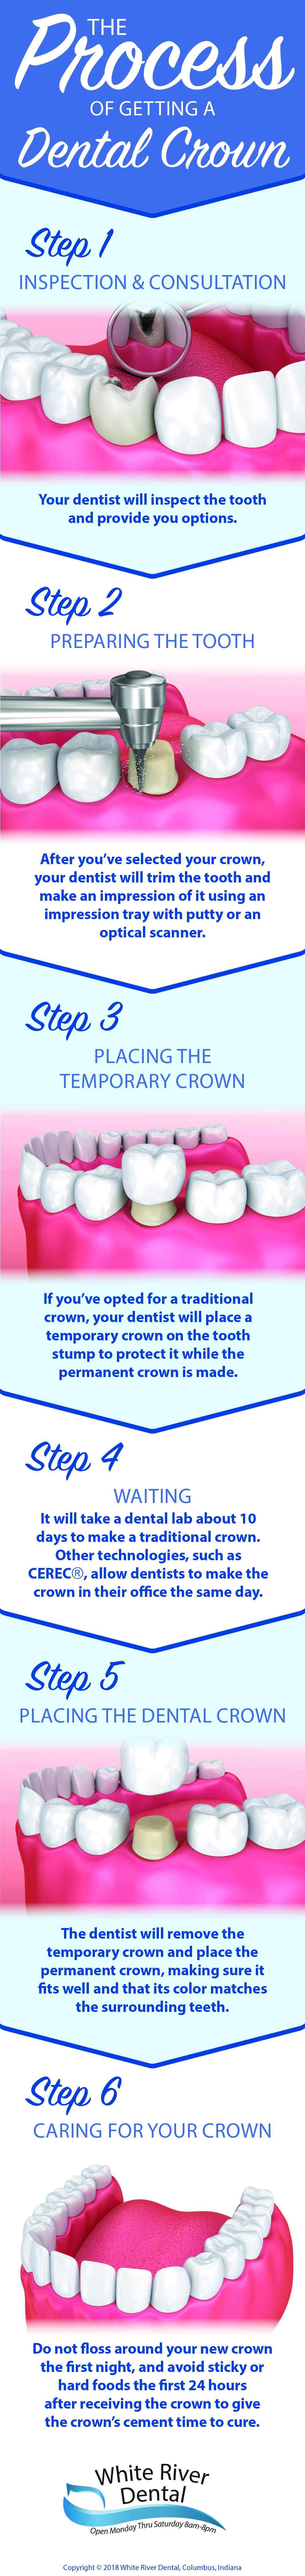 process of getting dental crown